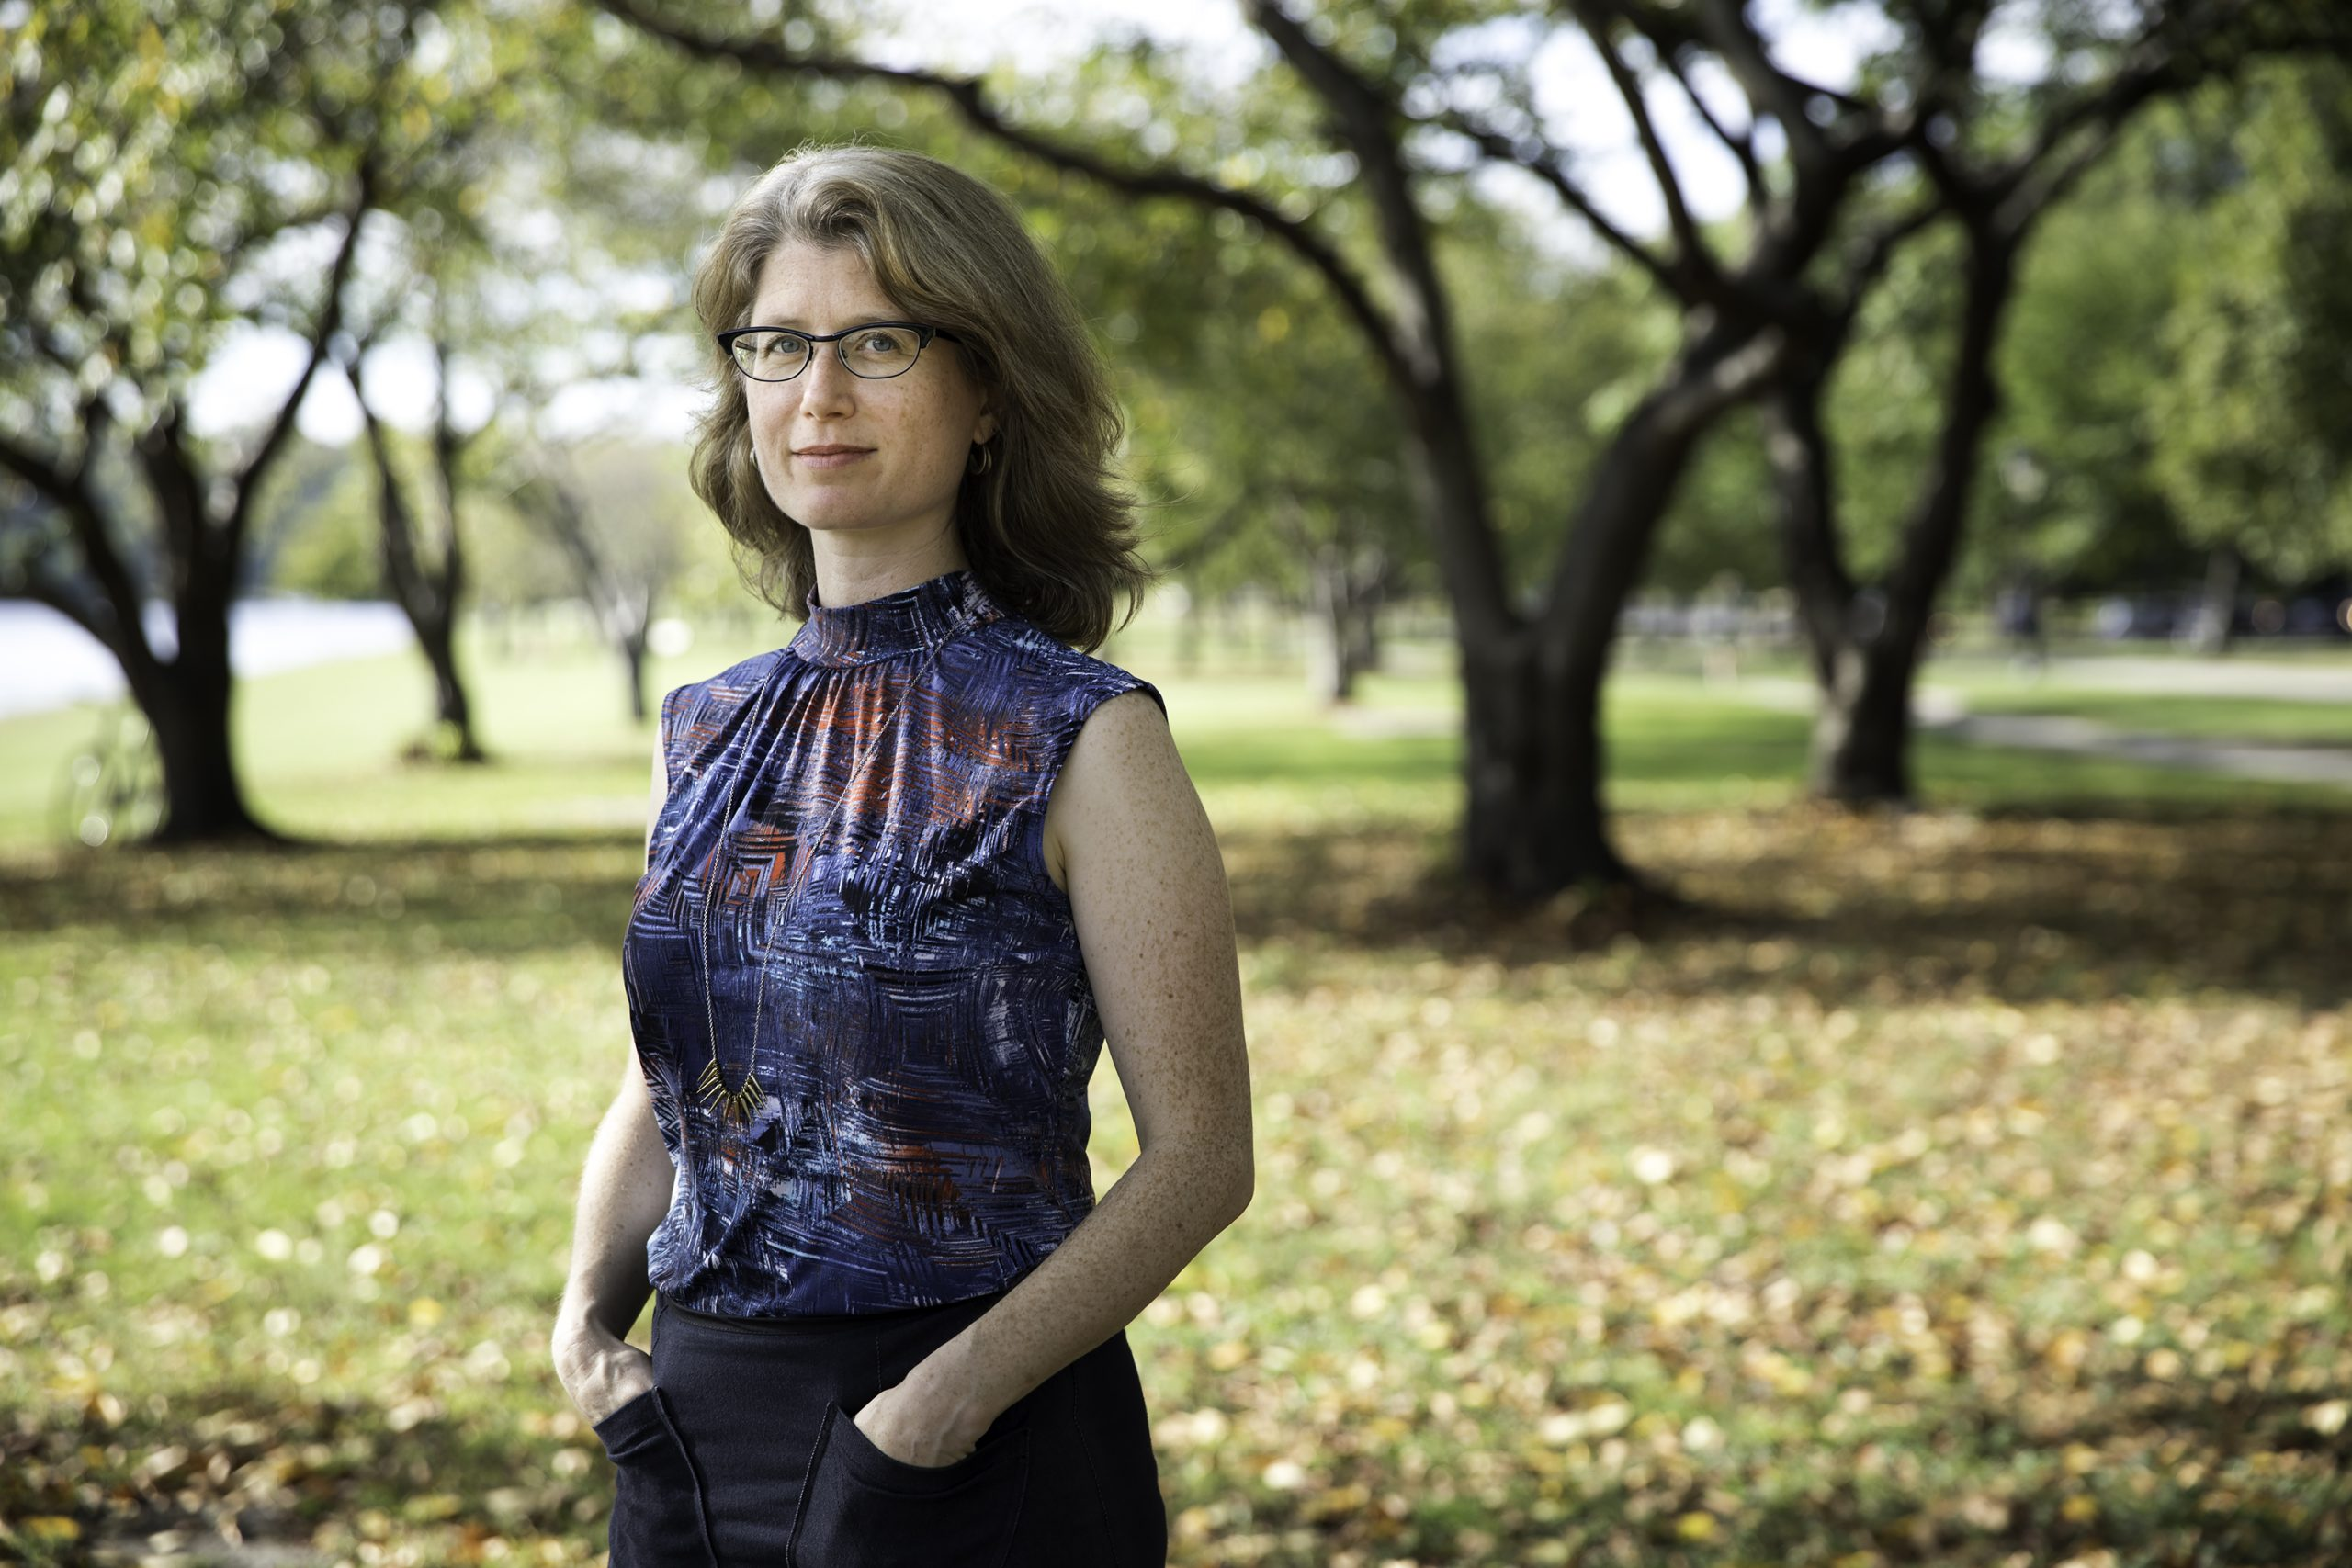 """Julia Bloch, director of Penn's Creative Writing Program, has just published a new book of poetry, """"The Sacramento of Desire,"""" completing a trilogy centered on her experiences in California. (Image: Pew Arts & Heritage Foundation)"""